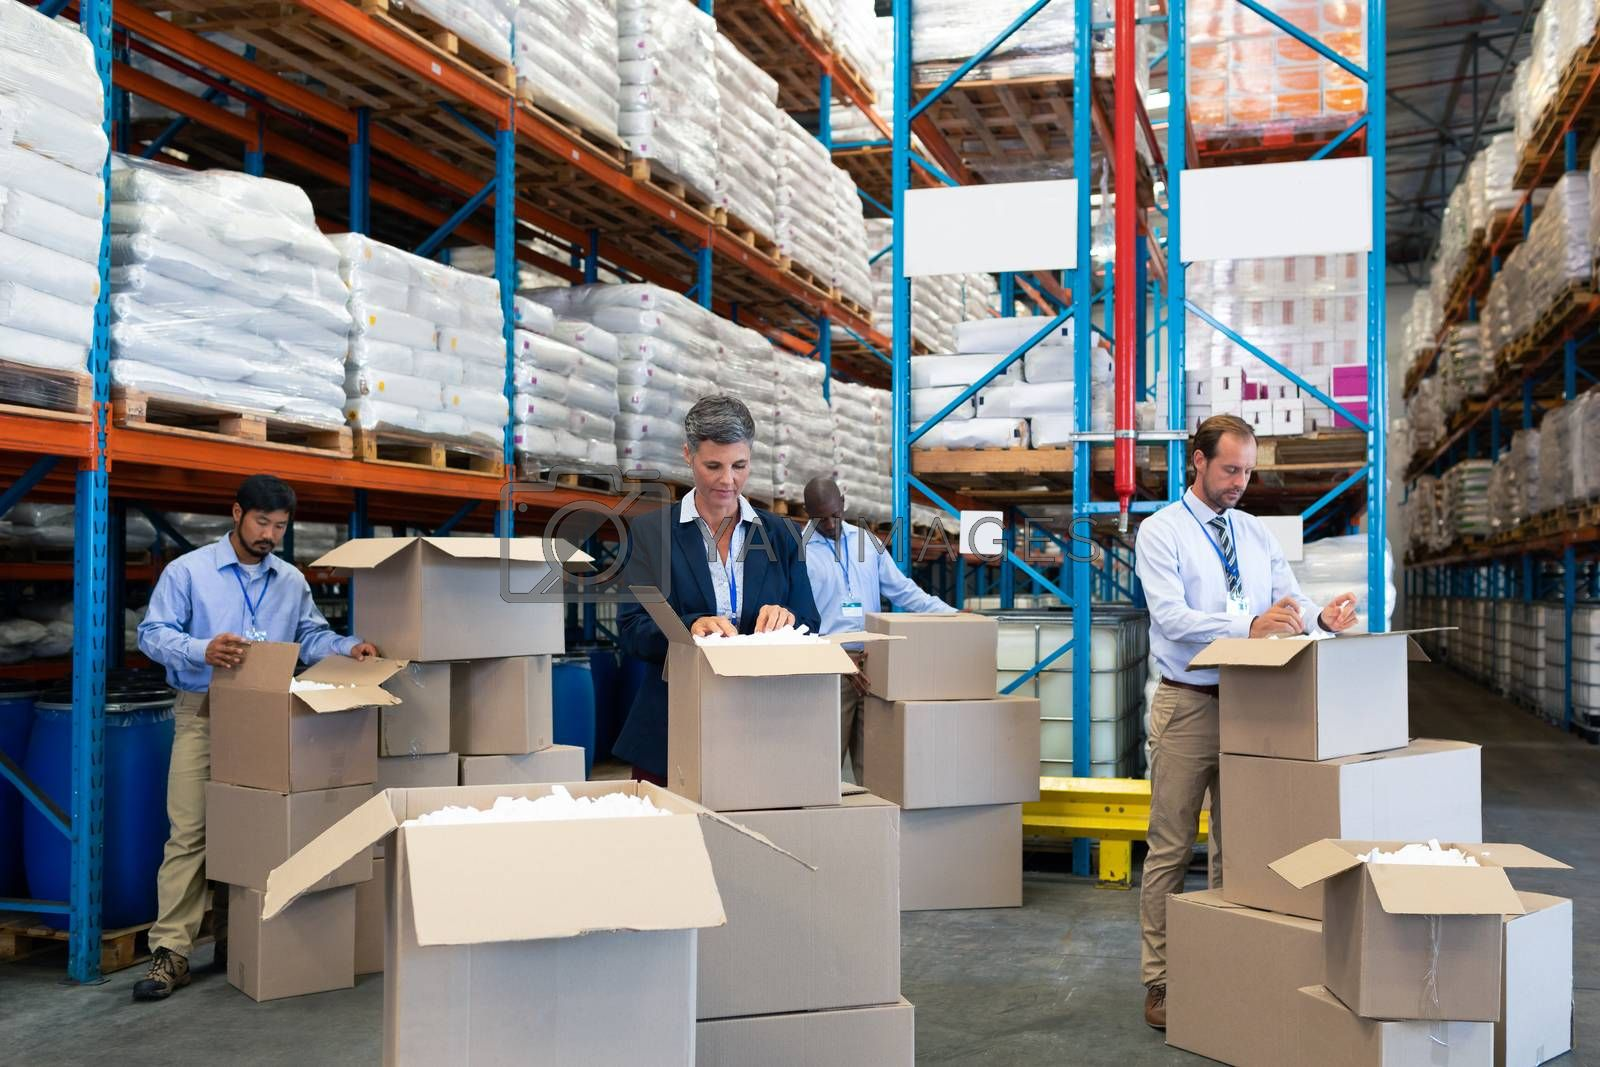 Front view of diverse mature staff checking stocks in warehouse. They are standing in front of cardboard boxes. This is a freight transportation and distribution warehouse. Industrial and industrial workers concept